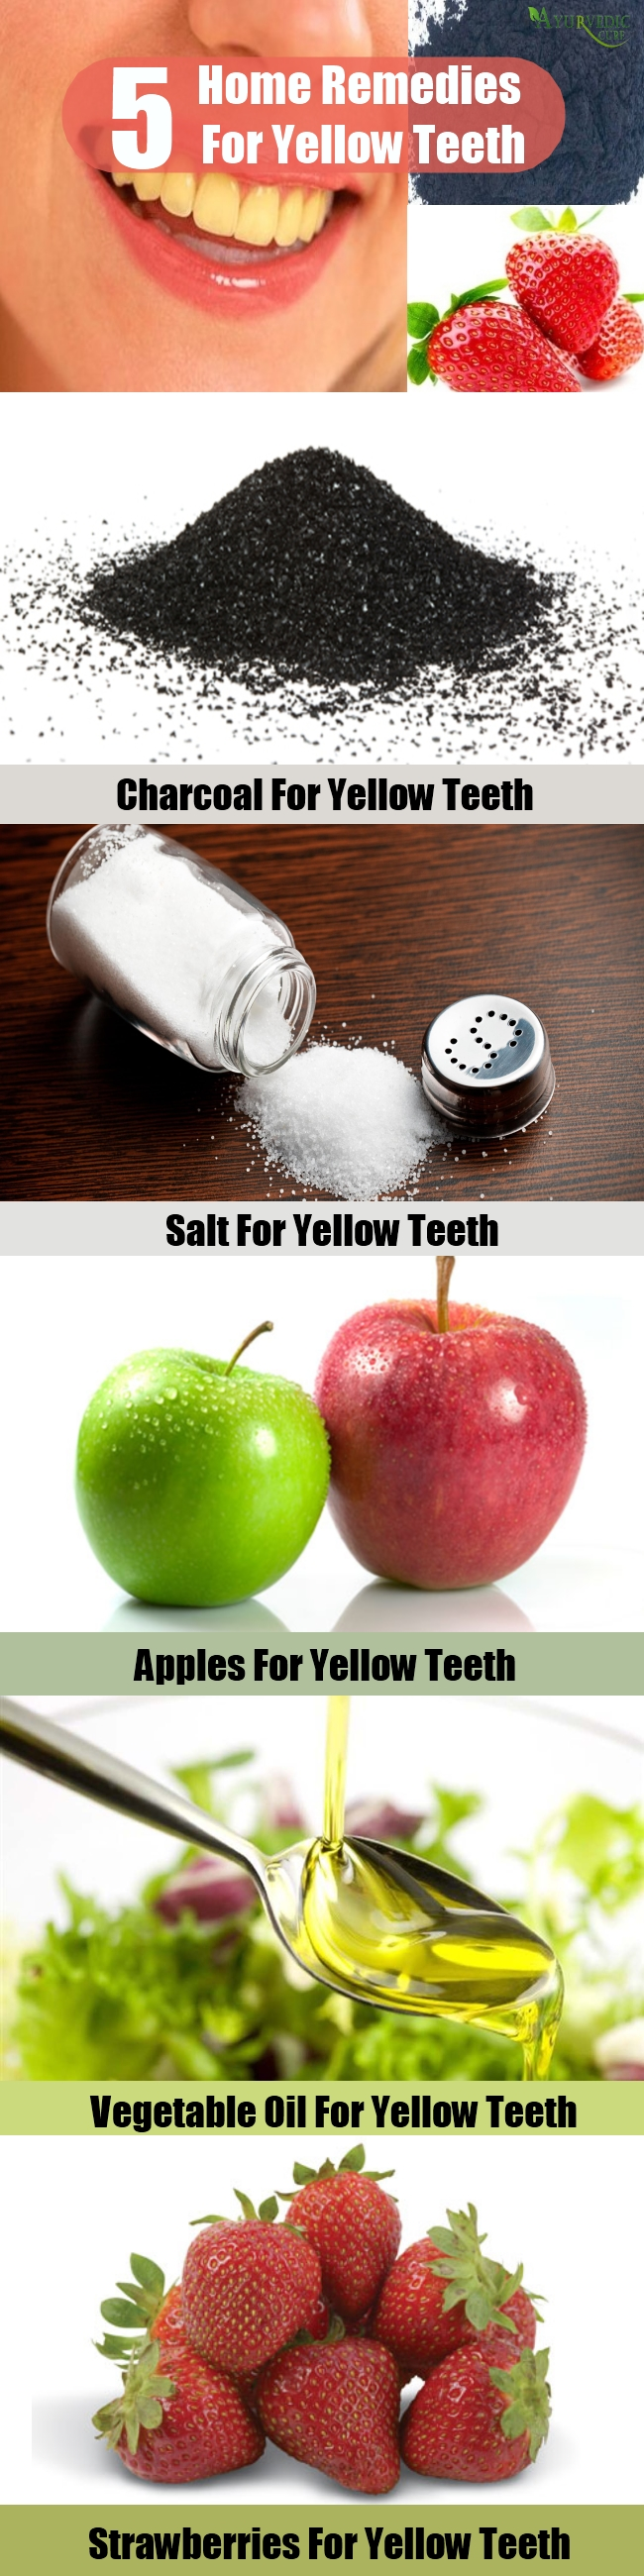 Top 5 Home Remedies For Yellow Teeth